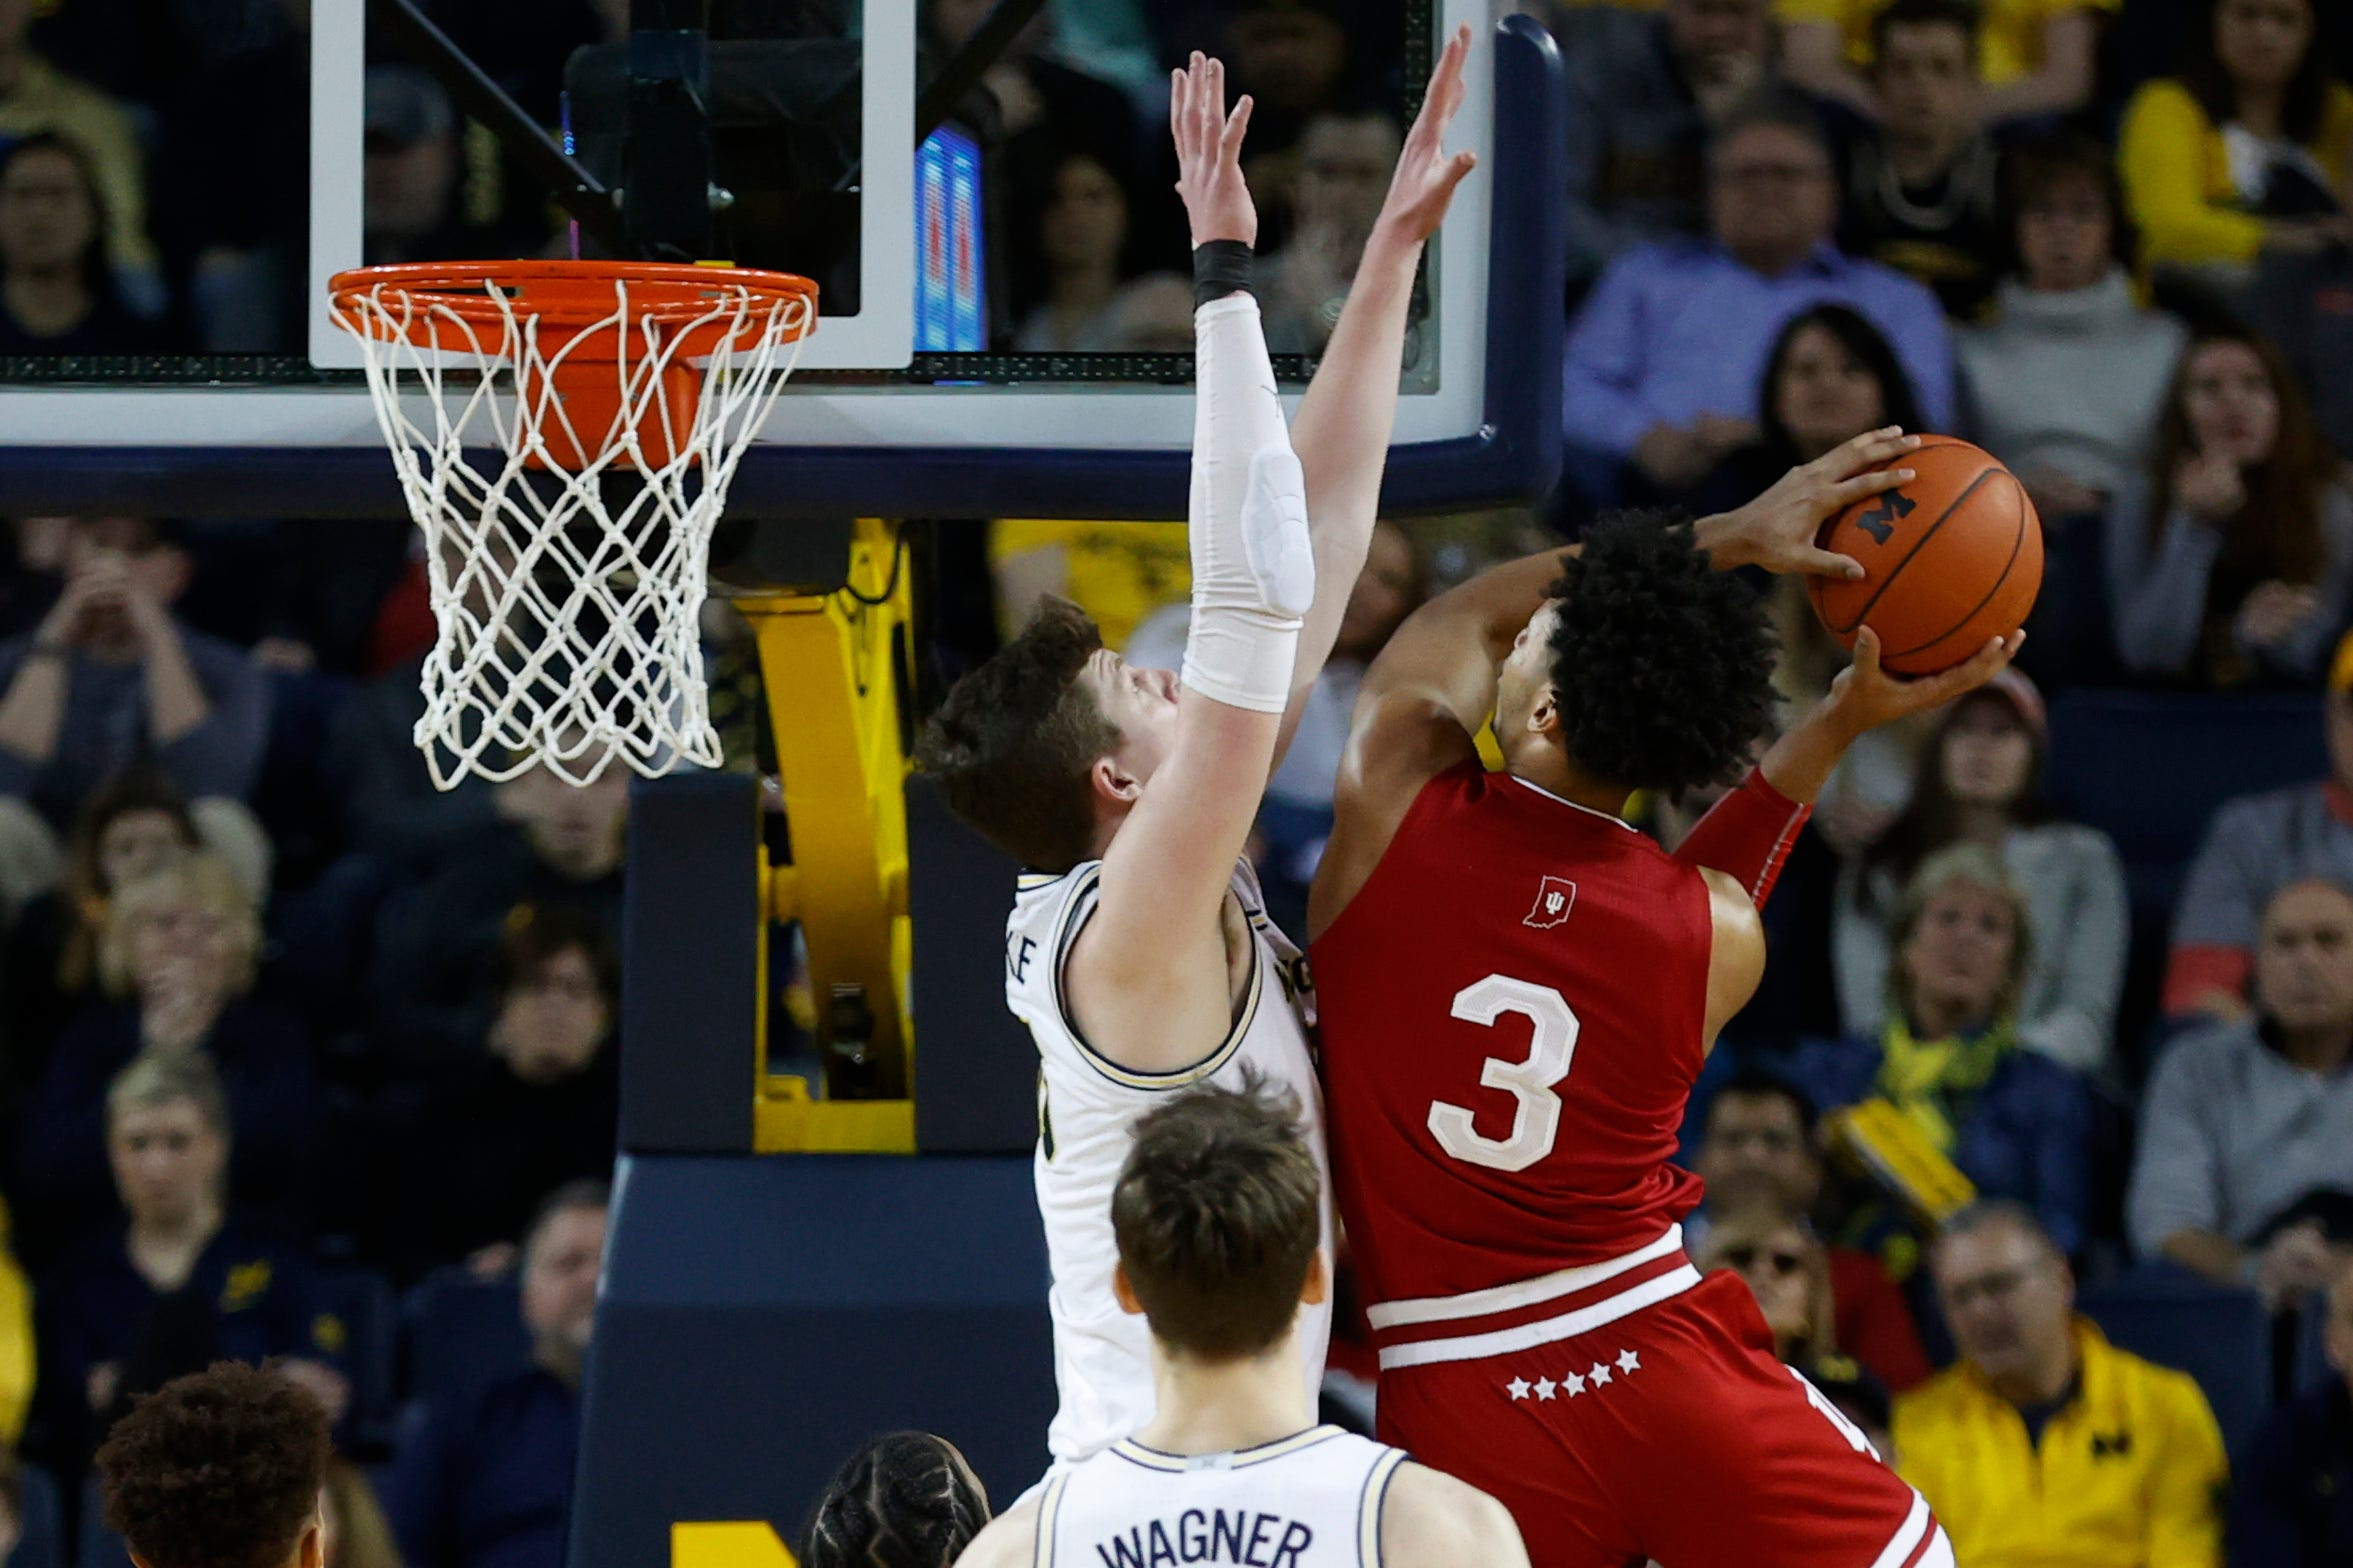 Iu Basketball S Road Woes Are Glaring In Another Blowout Loss